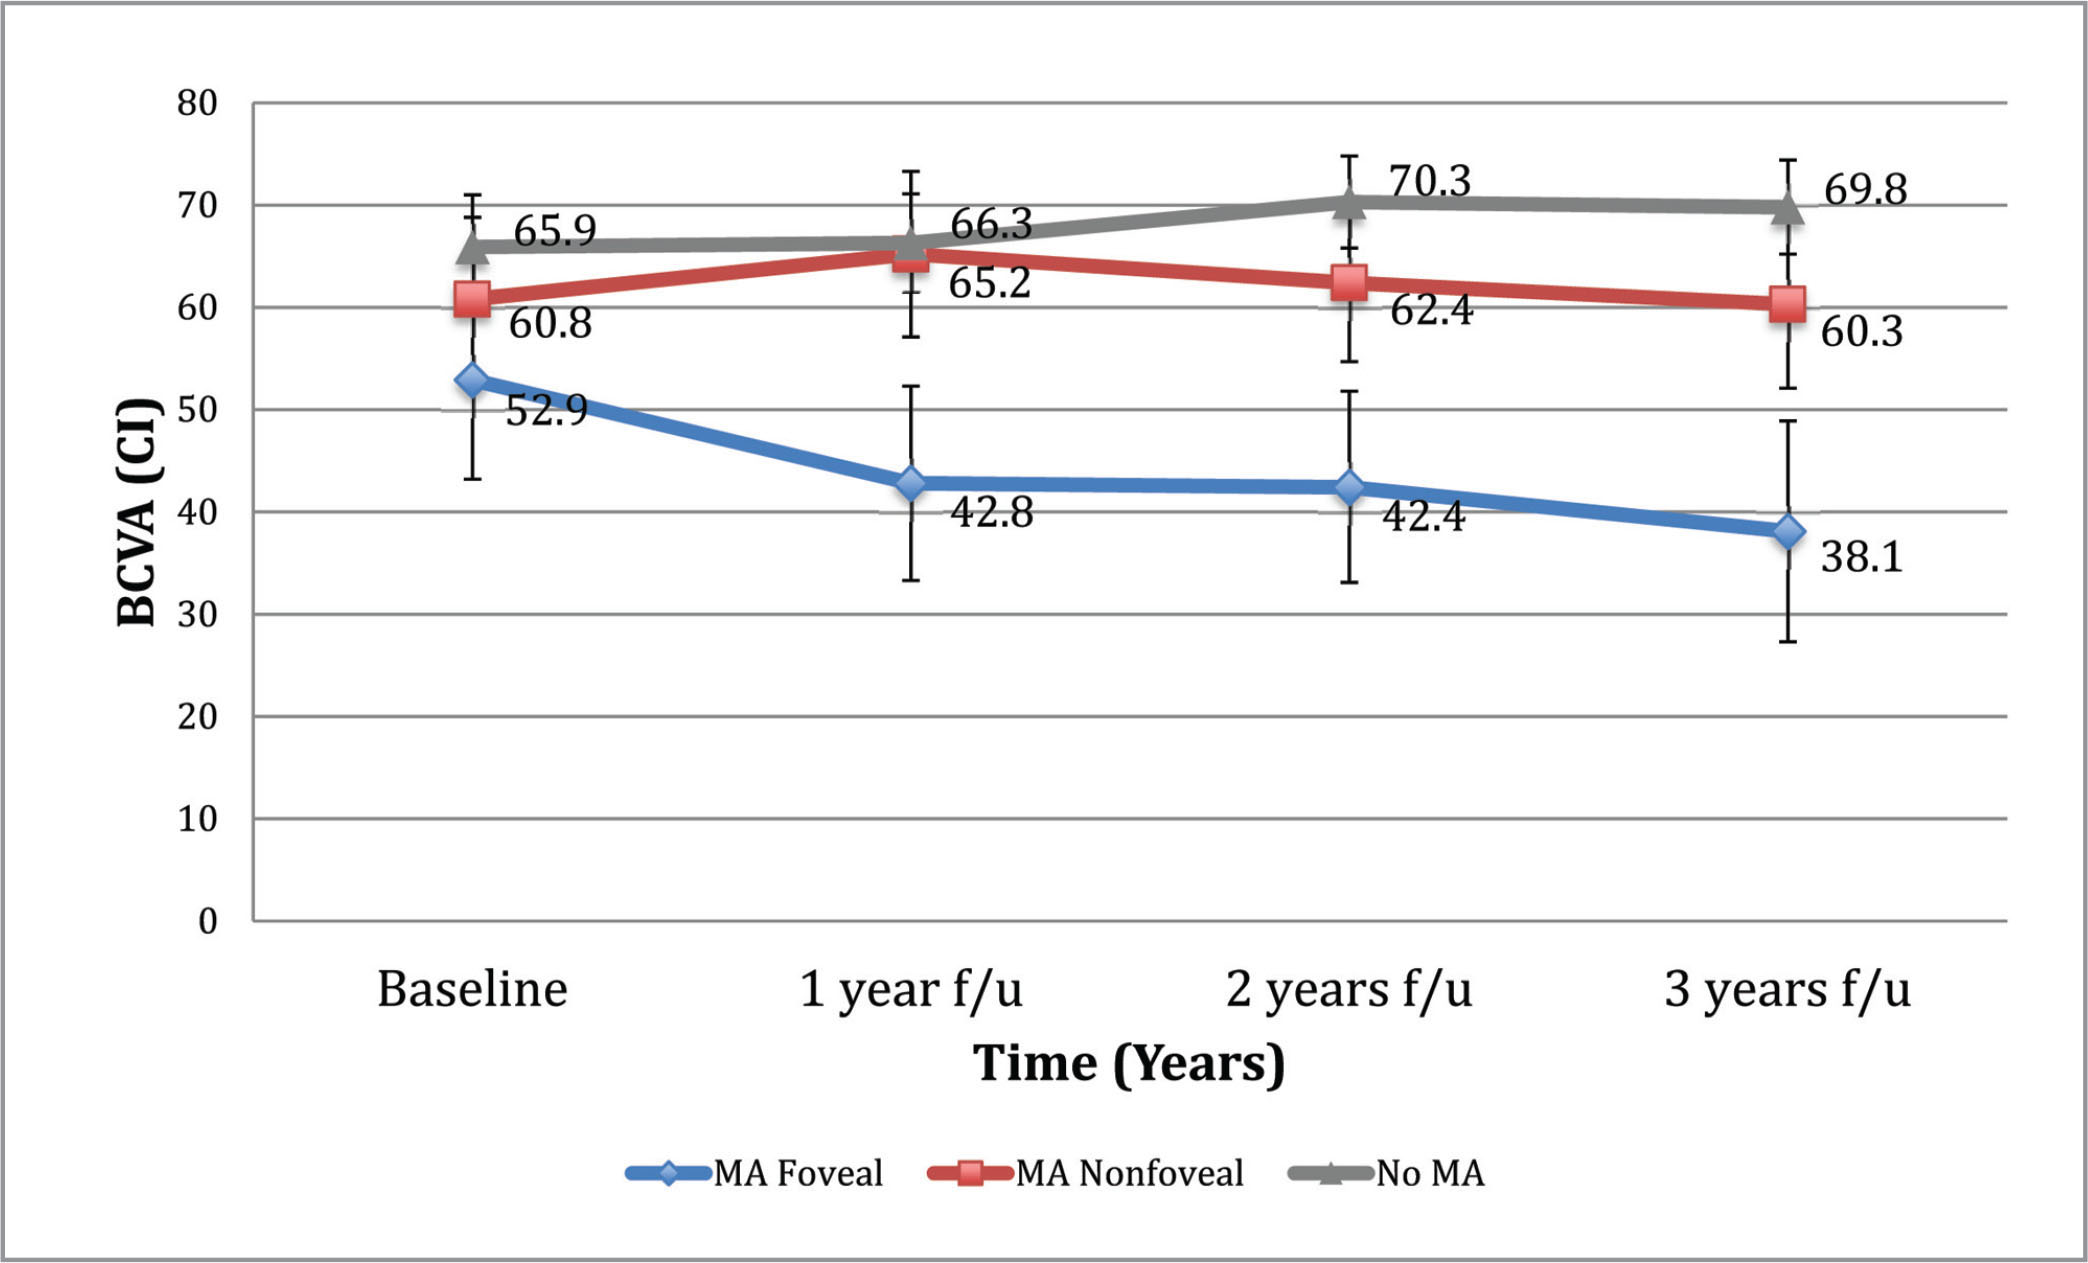 Best-corrected visual acuity (BCVA) progression in foveal macular atrophy (MA), nonfoveal MA, and non-MA patients undergoing anti-vascular endothelial growth factor injections. CI = confidence interval; f/u = follow-up